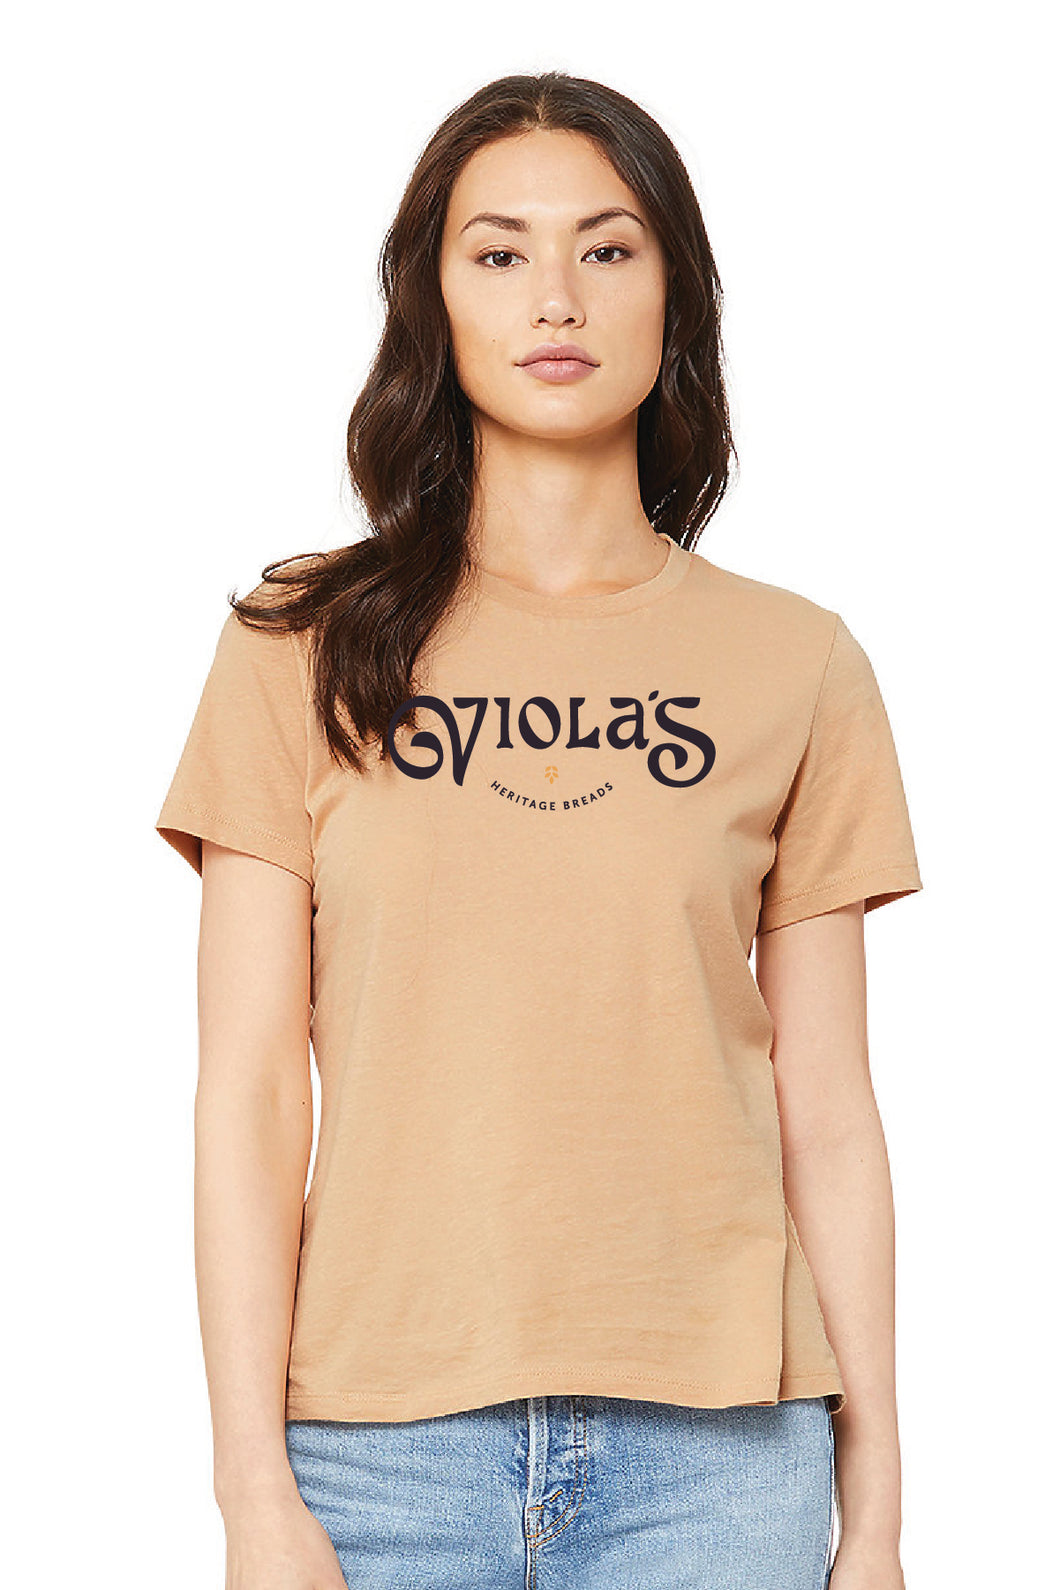 Viola's Heritage Breads Women's T-Shirt